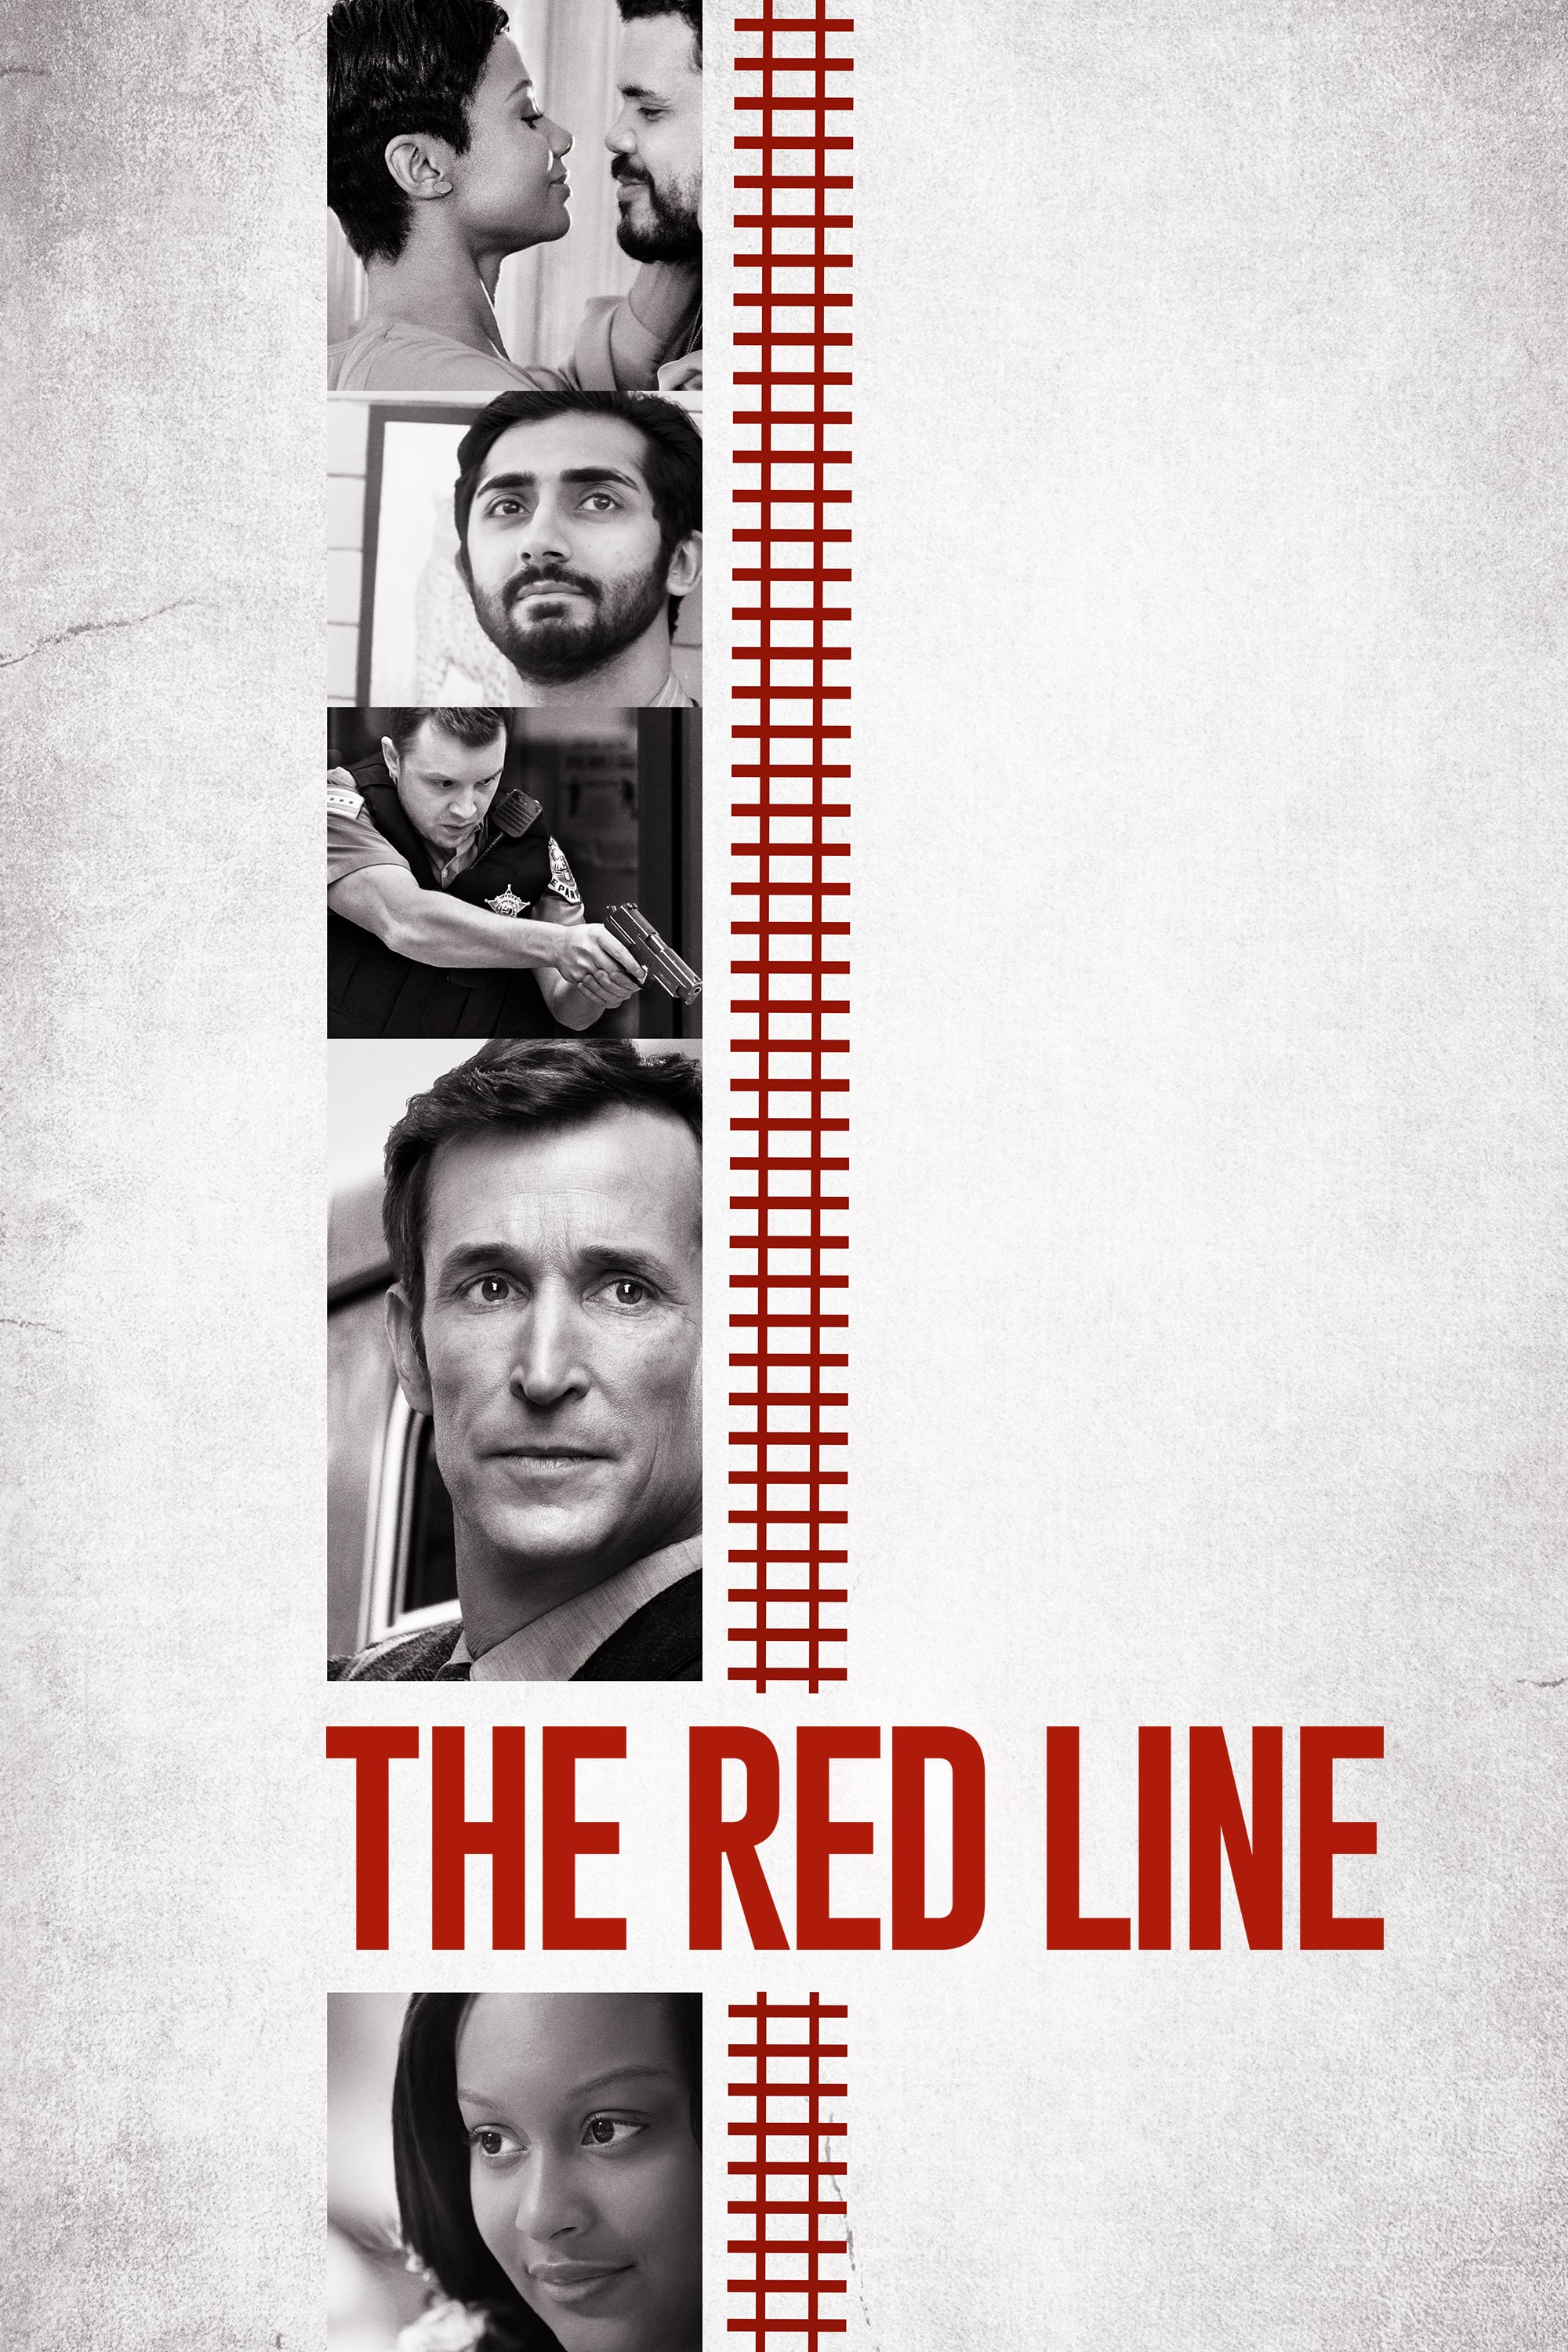 The Red Line rating